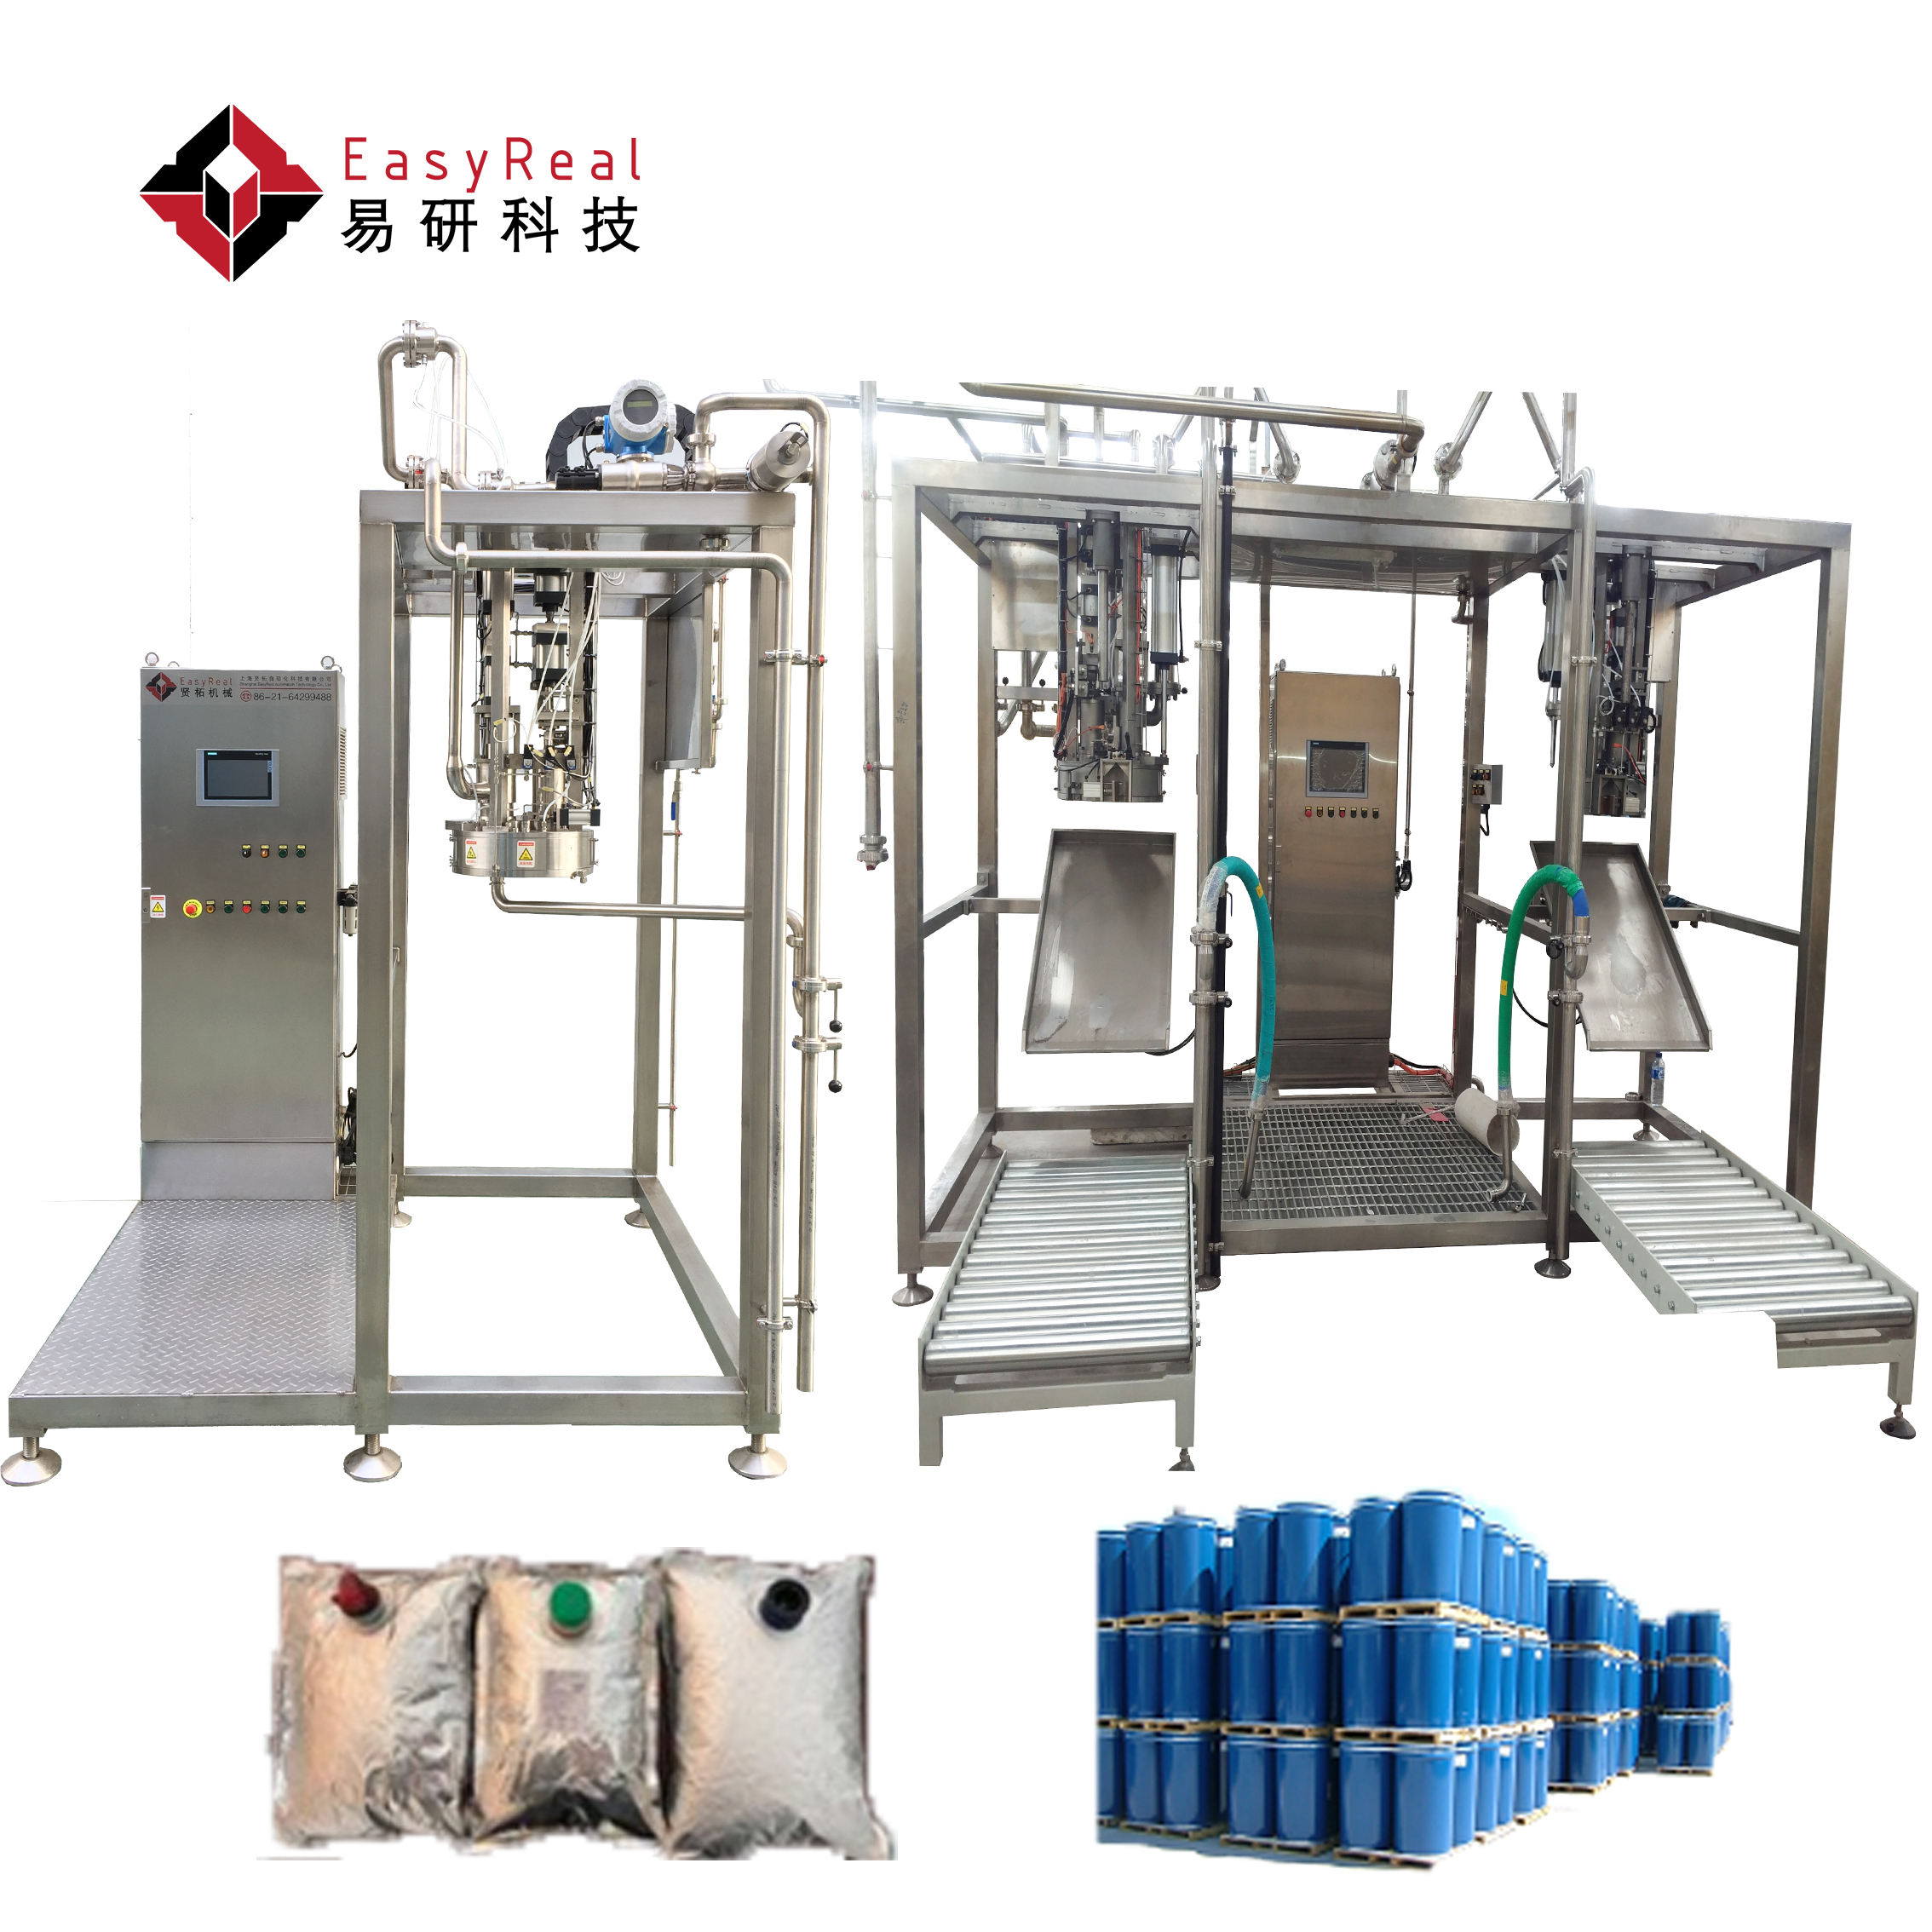 3 to 220 Liter aseptic bag filling machine for fruit juice paste pulp bag in box drum filler aseptic bag filling machine system